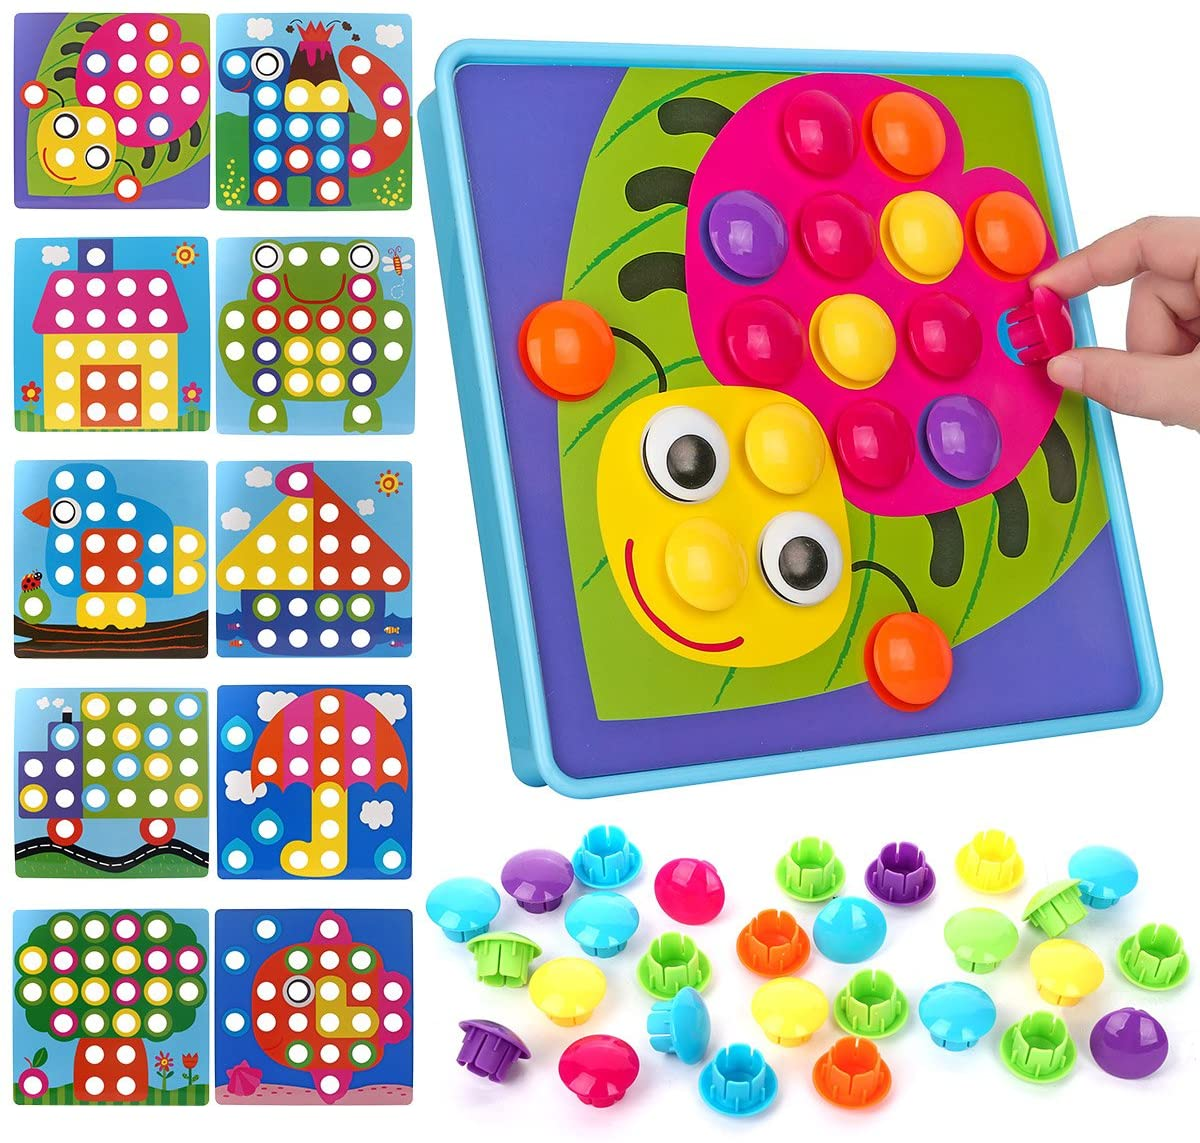 NextX Button Art Toy Color Matching Mosaic Pegboard Early Learning Educational Preschool Games for Kids' Motor Skills